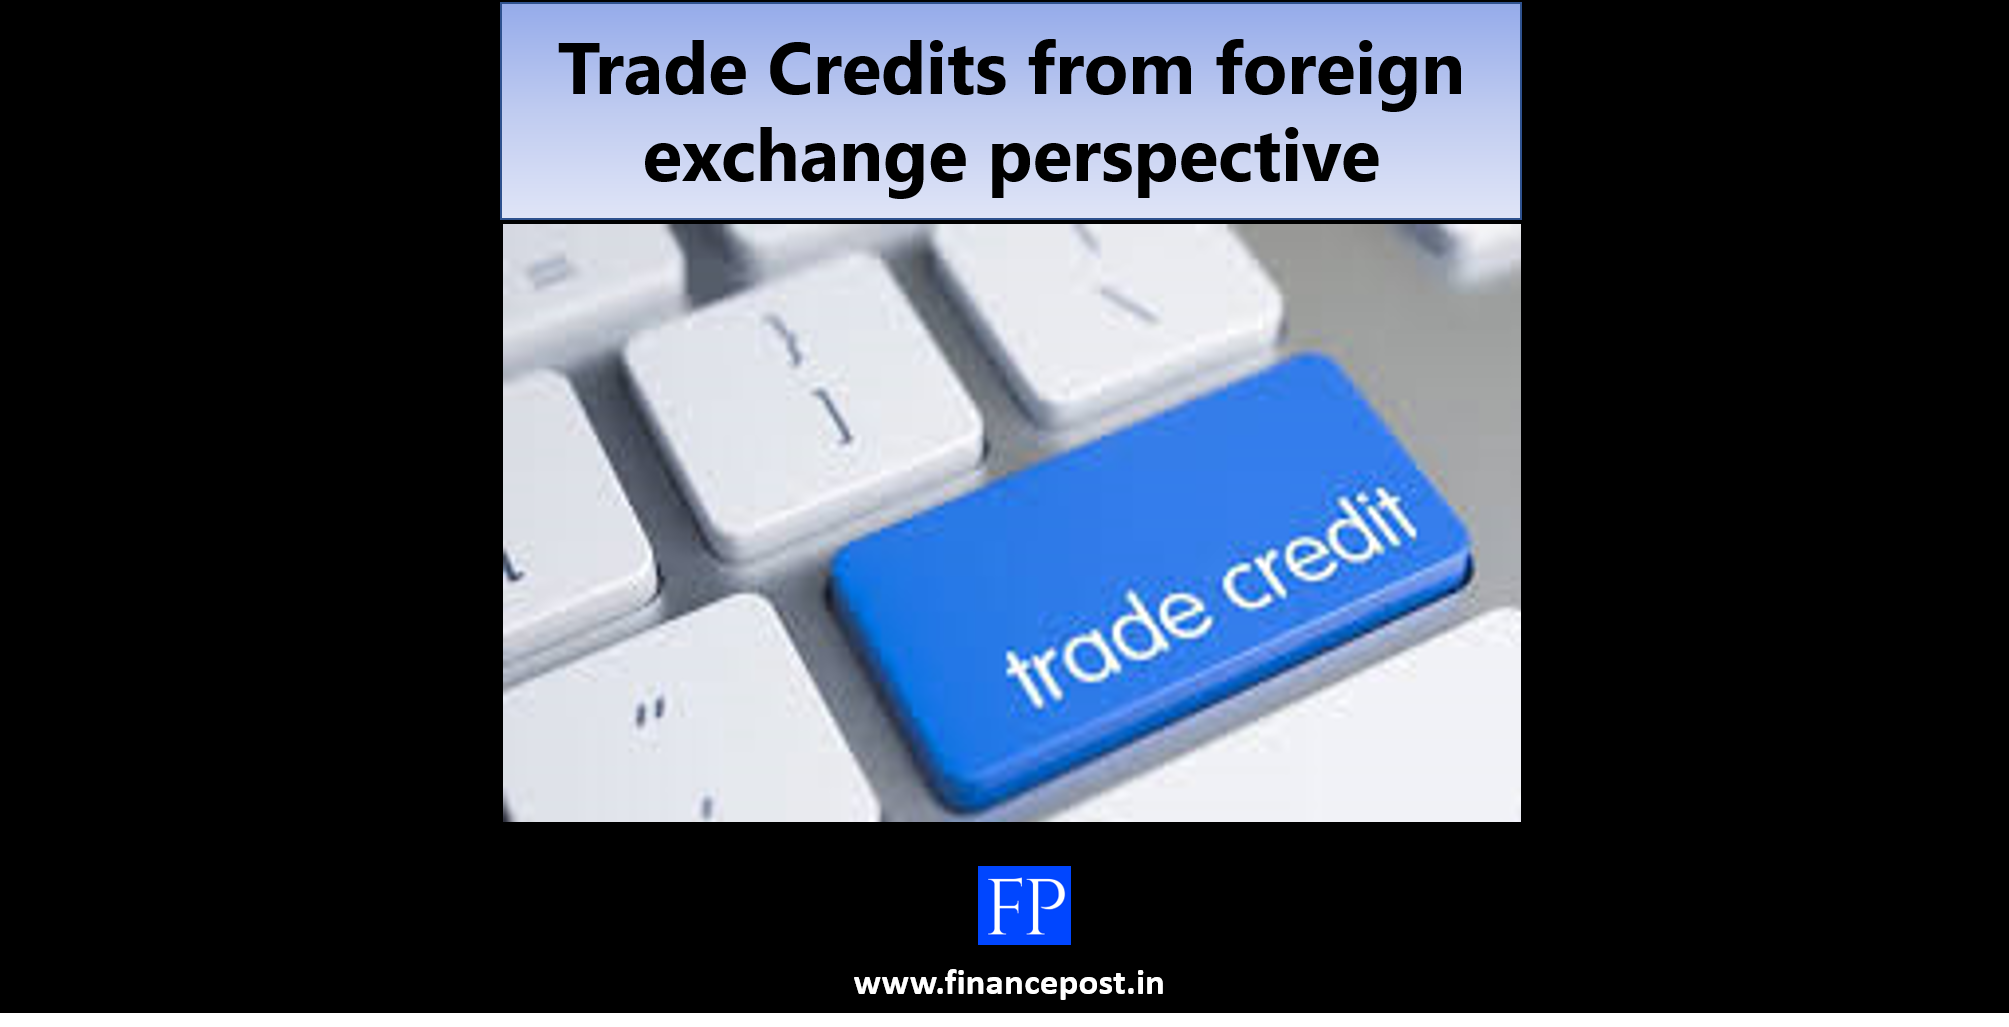 trade credits from foreign exchange perspective